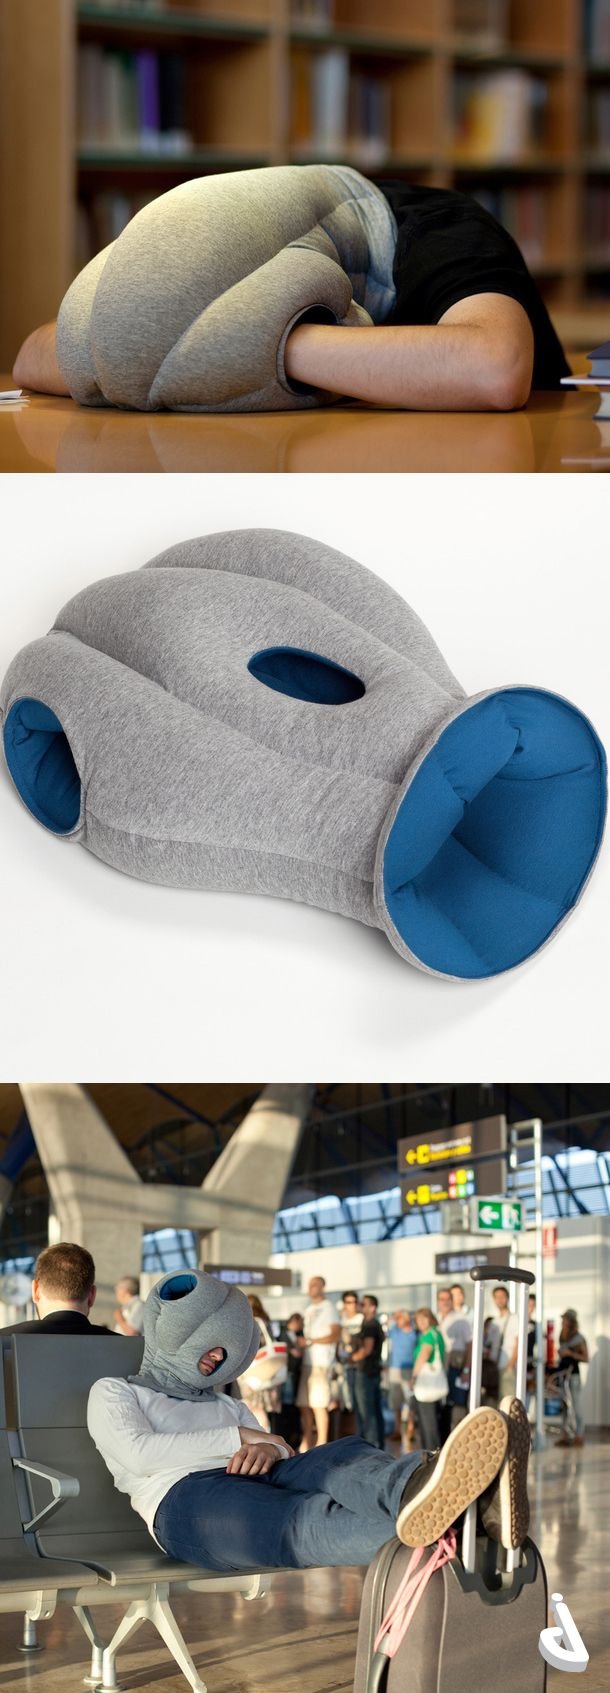 I want that products - Want To Hide From The World Try Ostrich Pillow Portable Nap Pillow Go Ahead Be Anti Social And Hide From The World